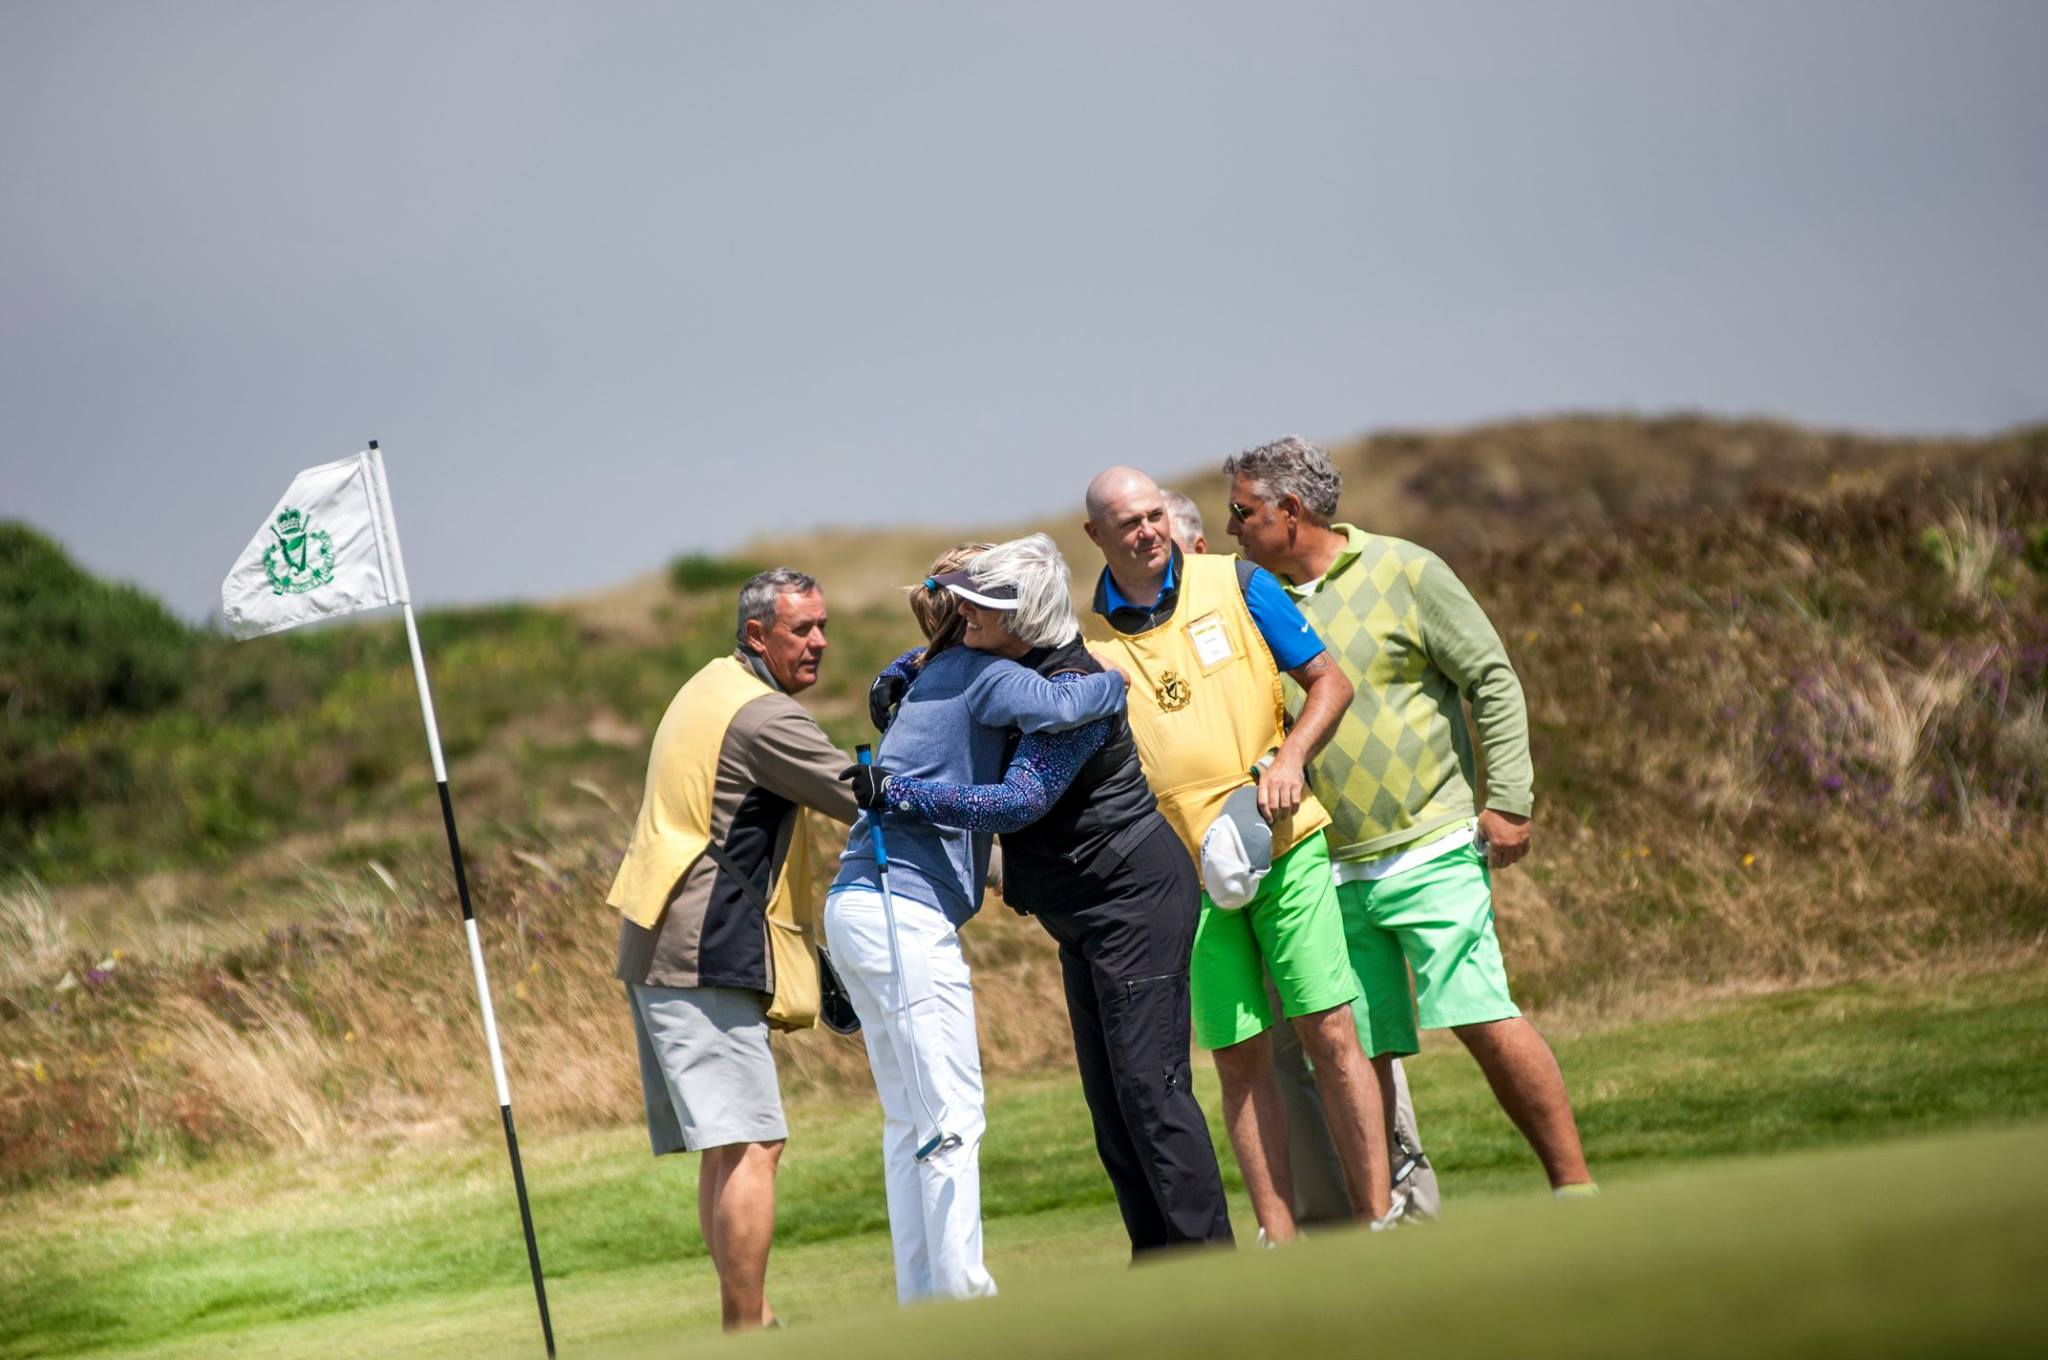 PerryGolf clients show sportsmanship at the conclusion of their round at at Royal County Down Golf Club.